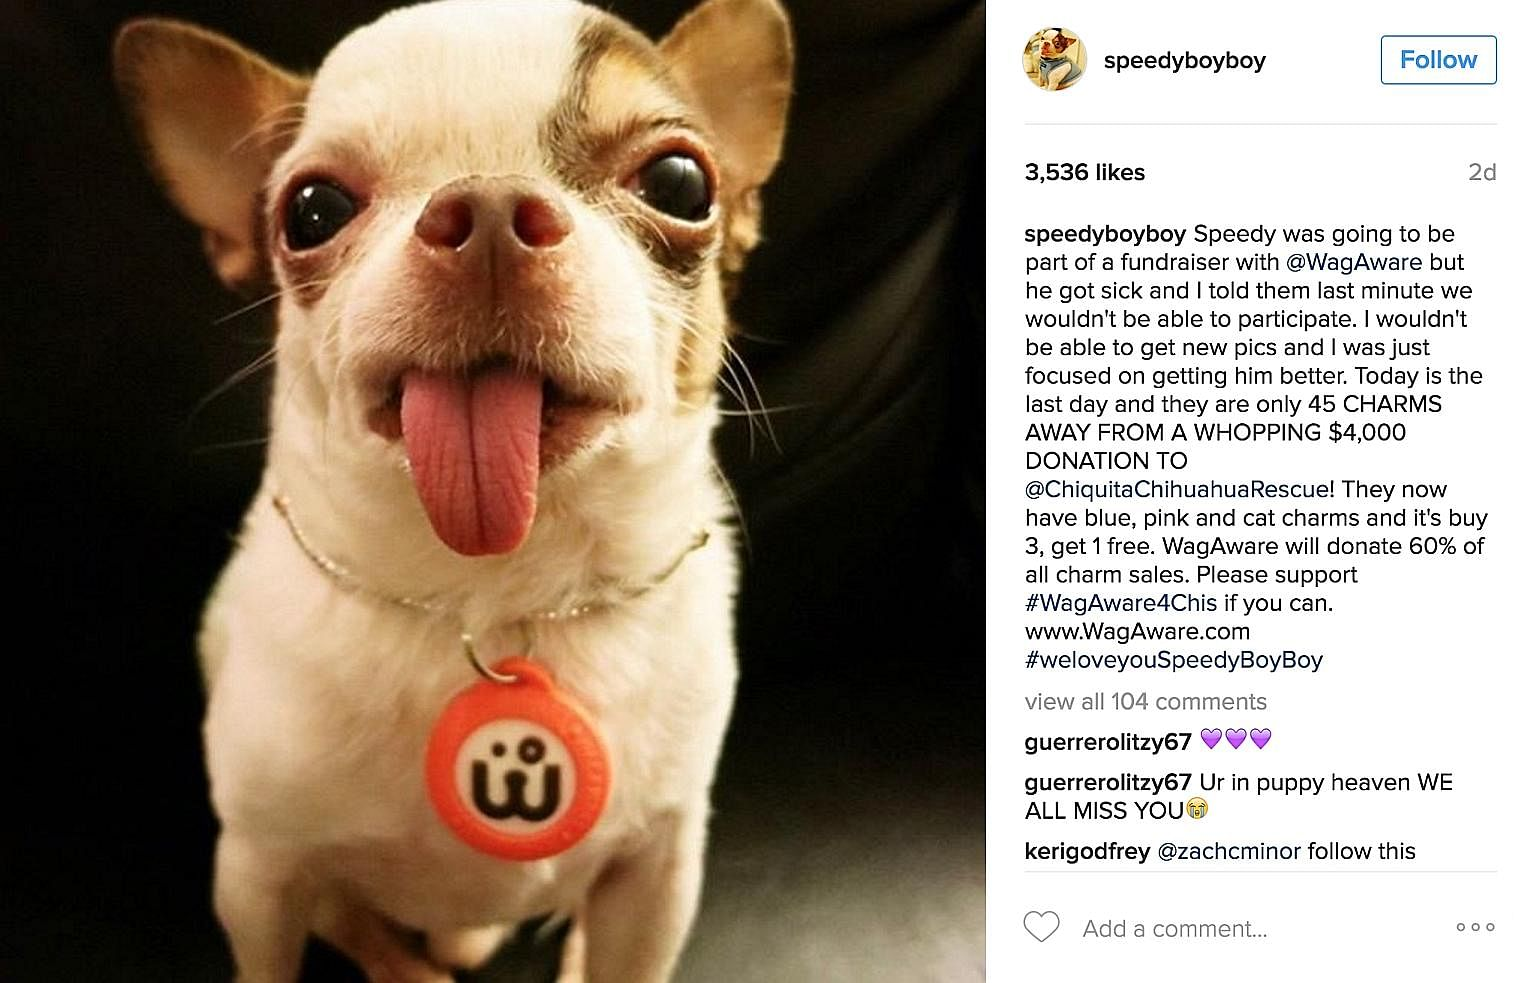 A crowd-funder set up to help pay for Speedy Boy Boy's medical bills reached its goal in less than 24 hours. But just over a week ago, the chihuahua died. Roux (above) is a cat born without front legs. Her Instagram account has close to 400,000 follo